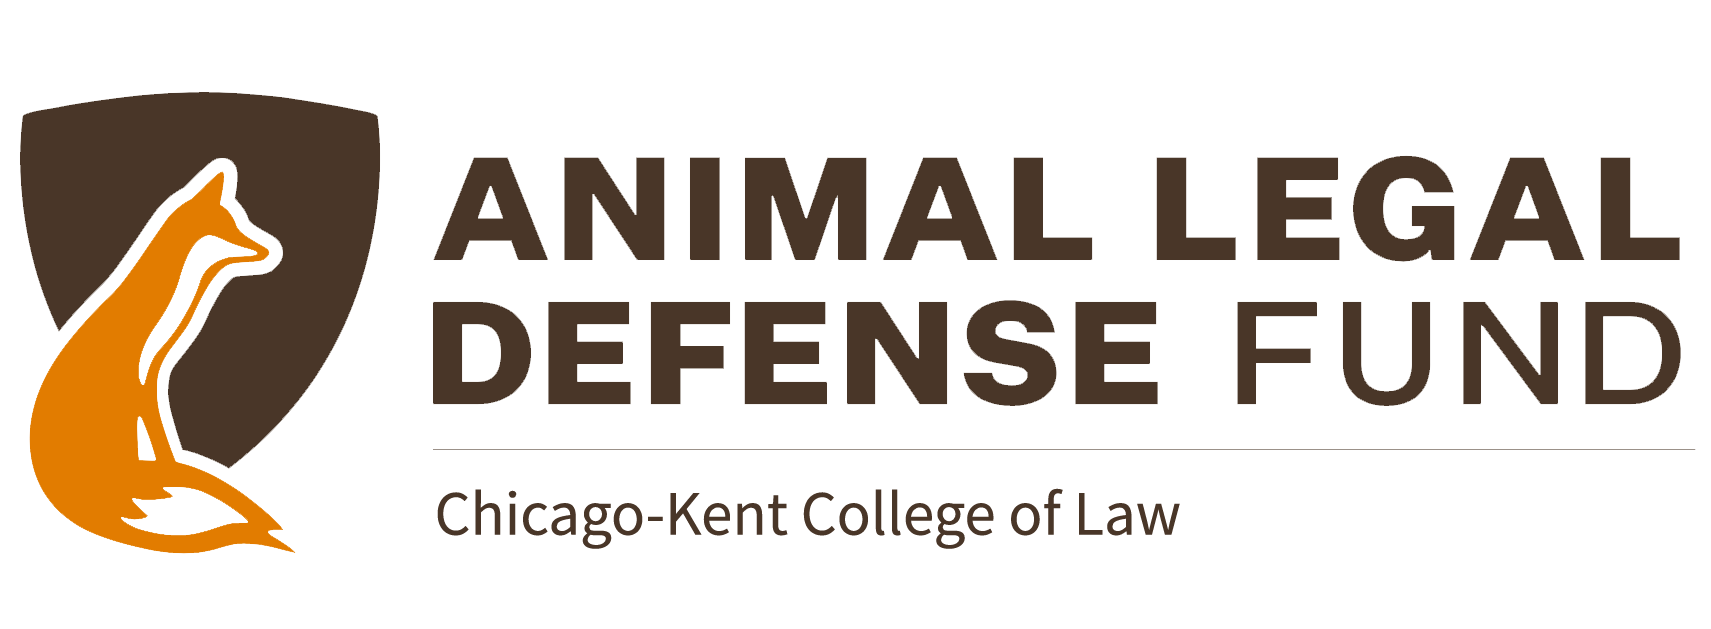 Student Animal Legal Defense Fund